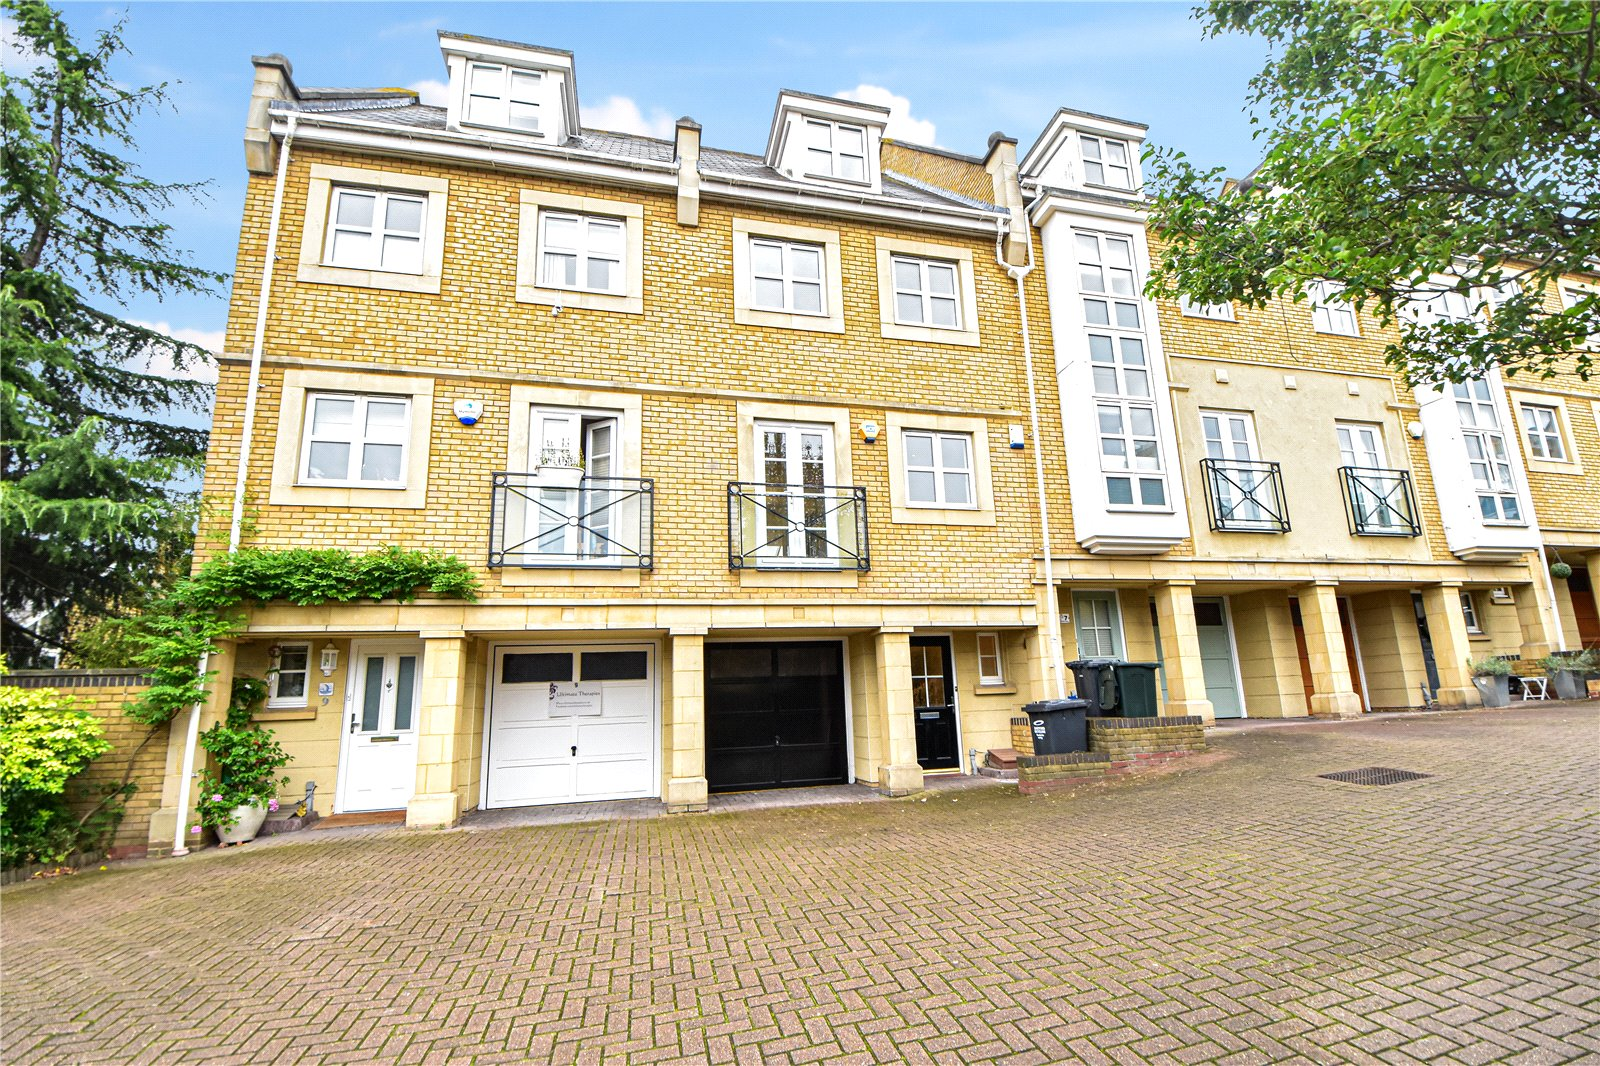 Kingfisher Drive, Greenhithe, Kent, DA9